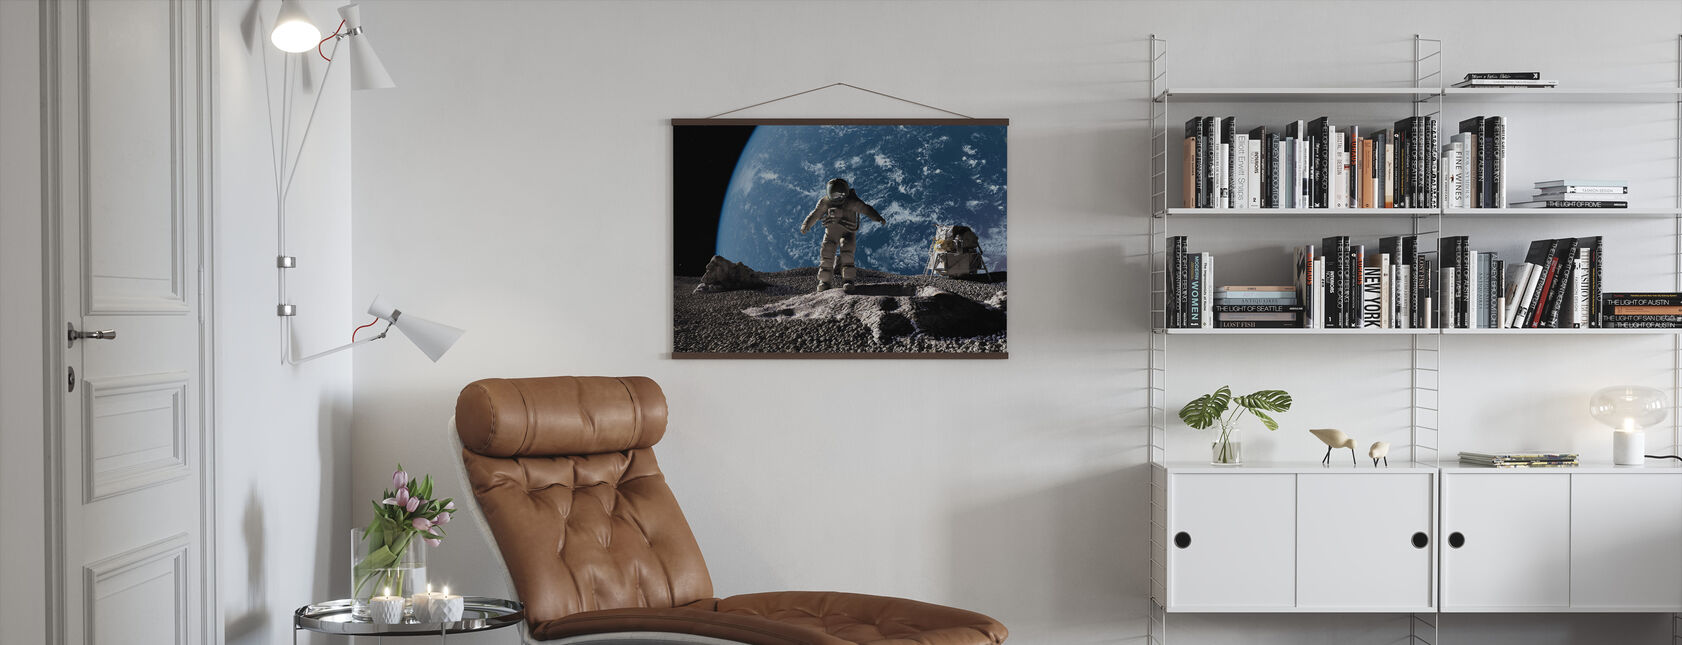 Astronaut with Earth in Background - Poster - Living Room